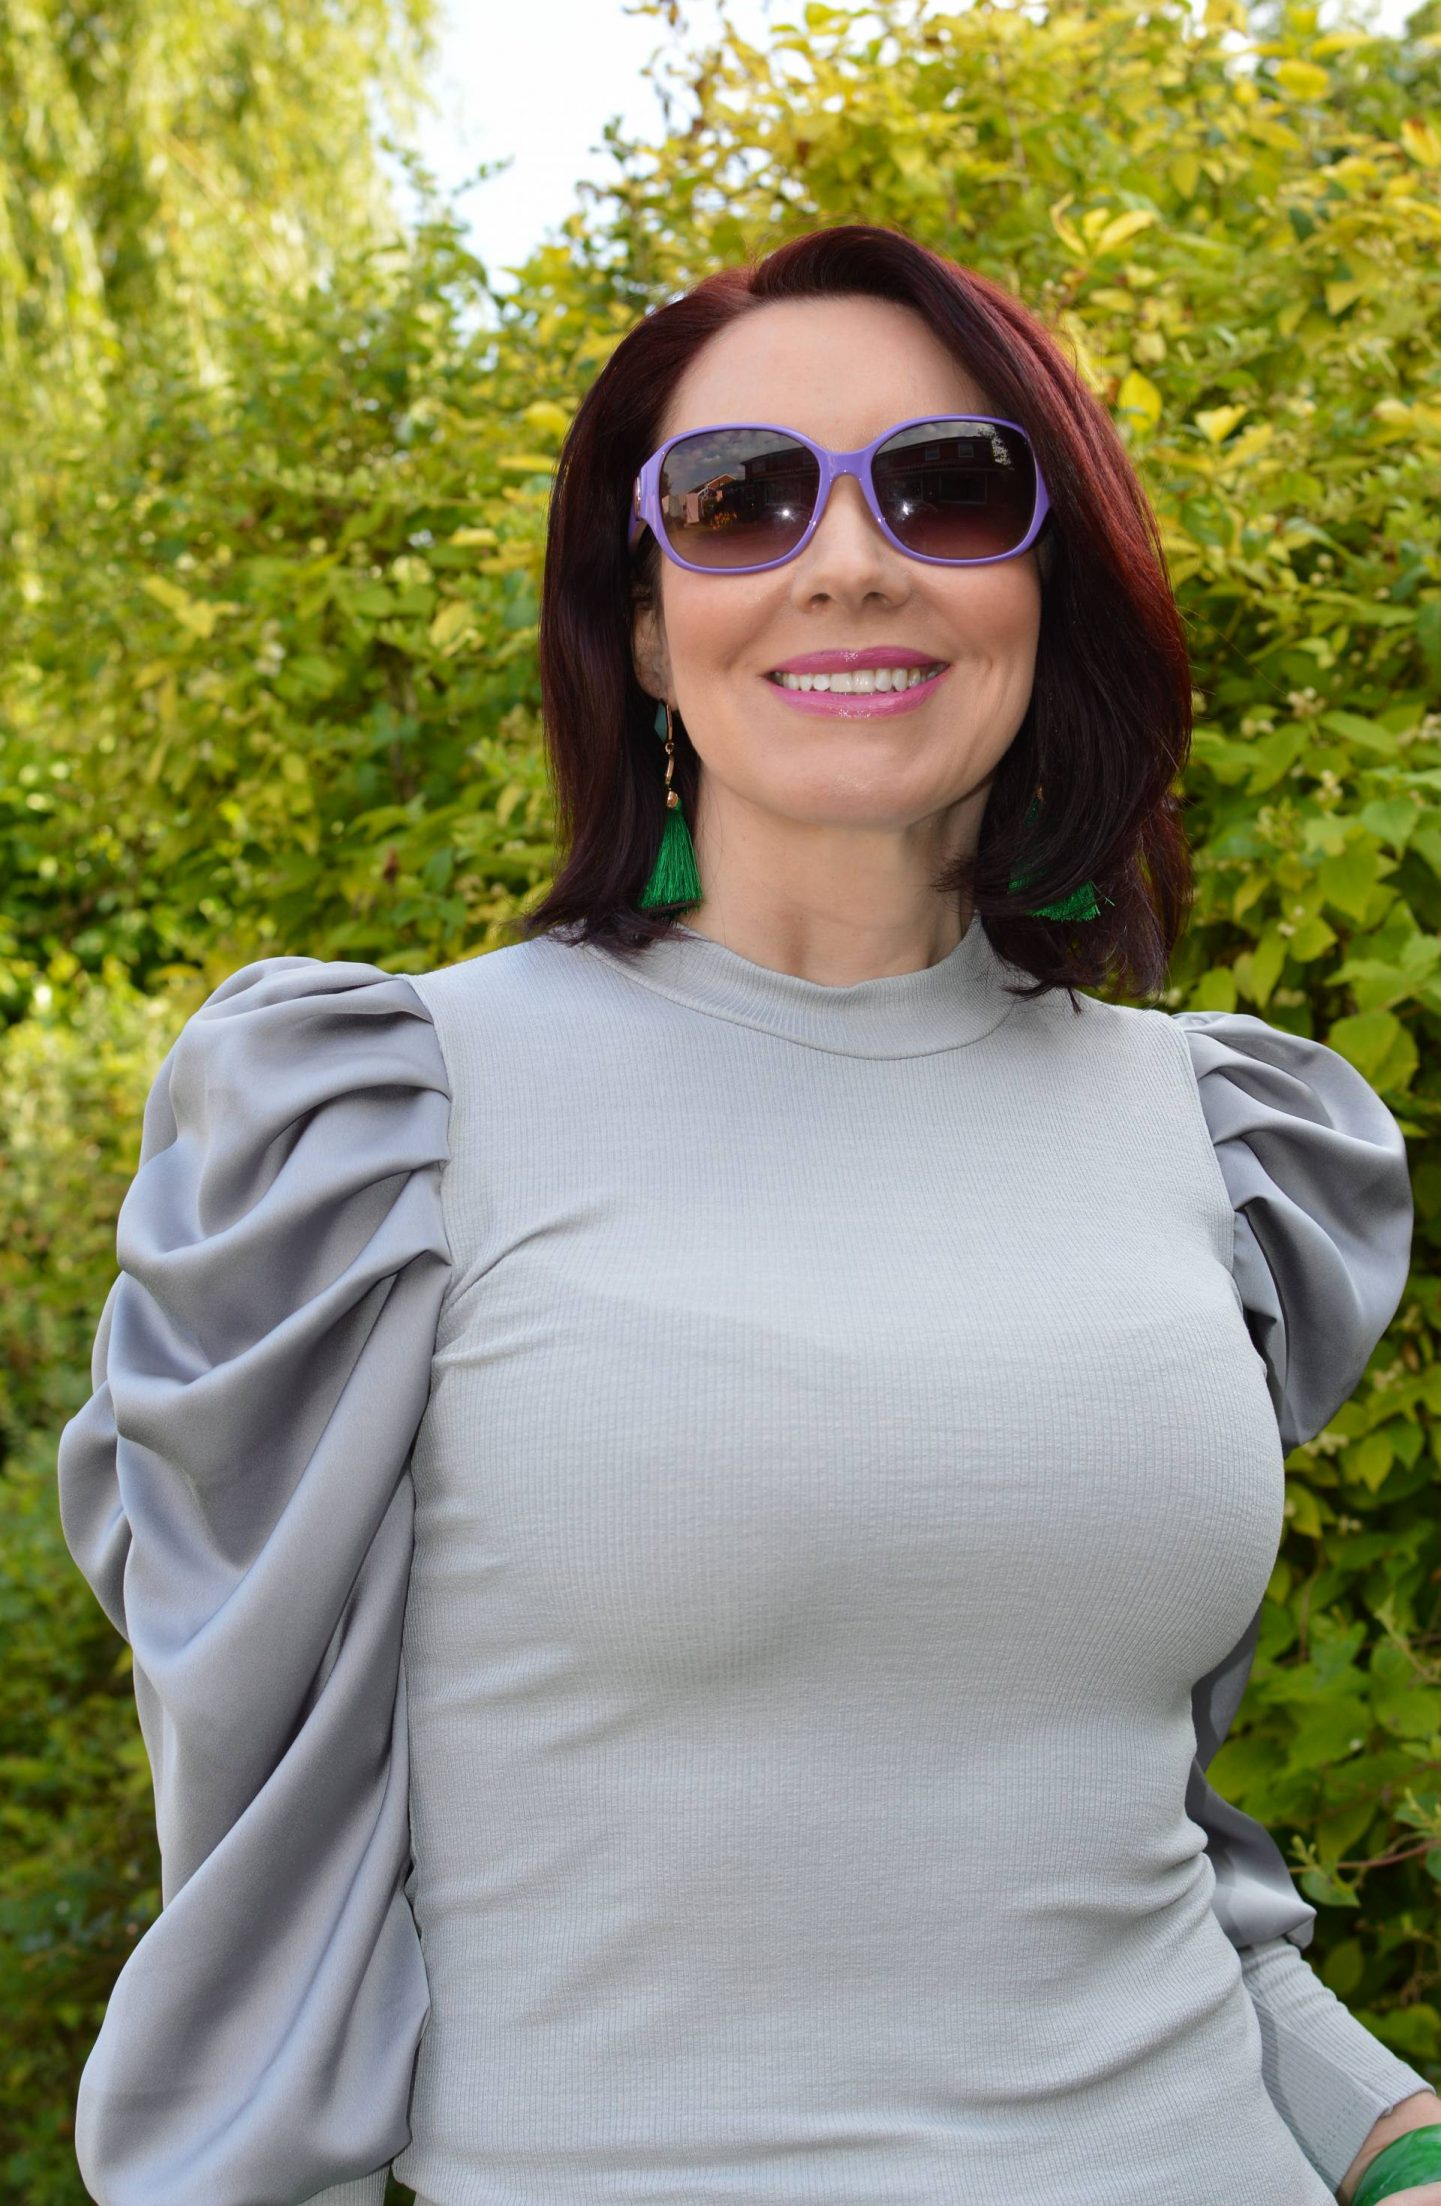 New Look grey satin sleeve top, Ted Baker purple sunglasses